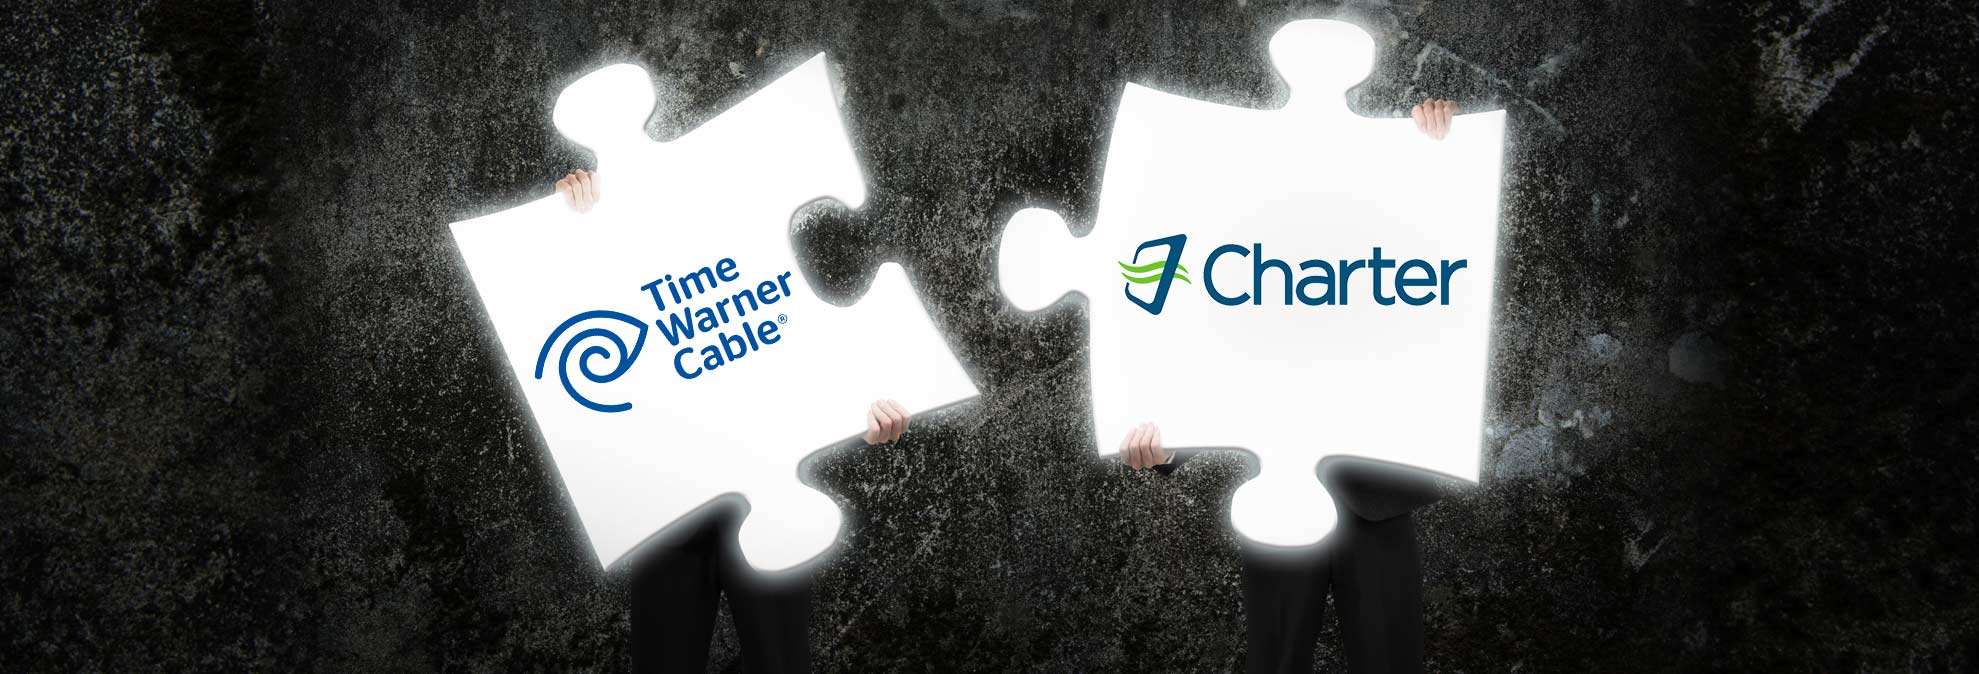 FCC Documents Show Why Charter-Time Warner Merger Might Be Bad for Consumers - Consumer Reports